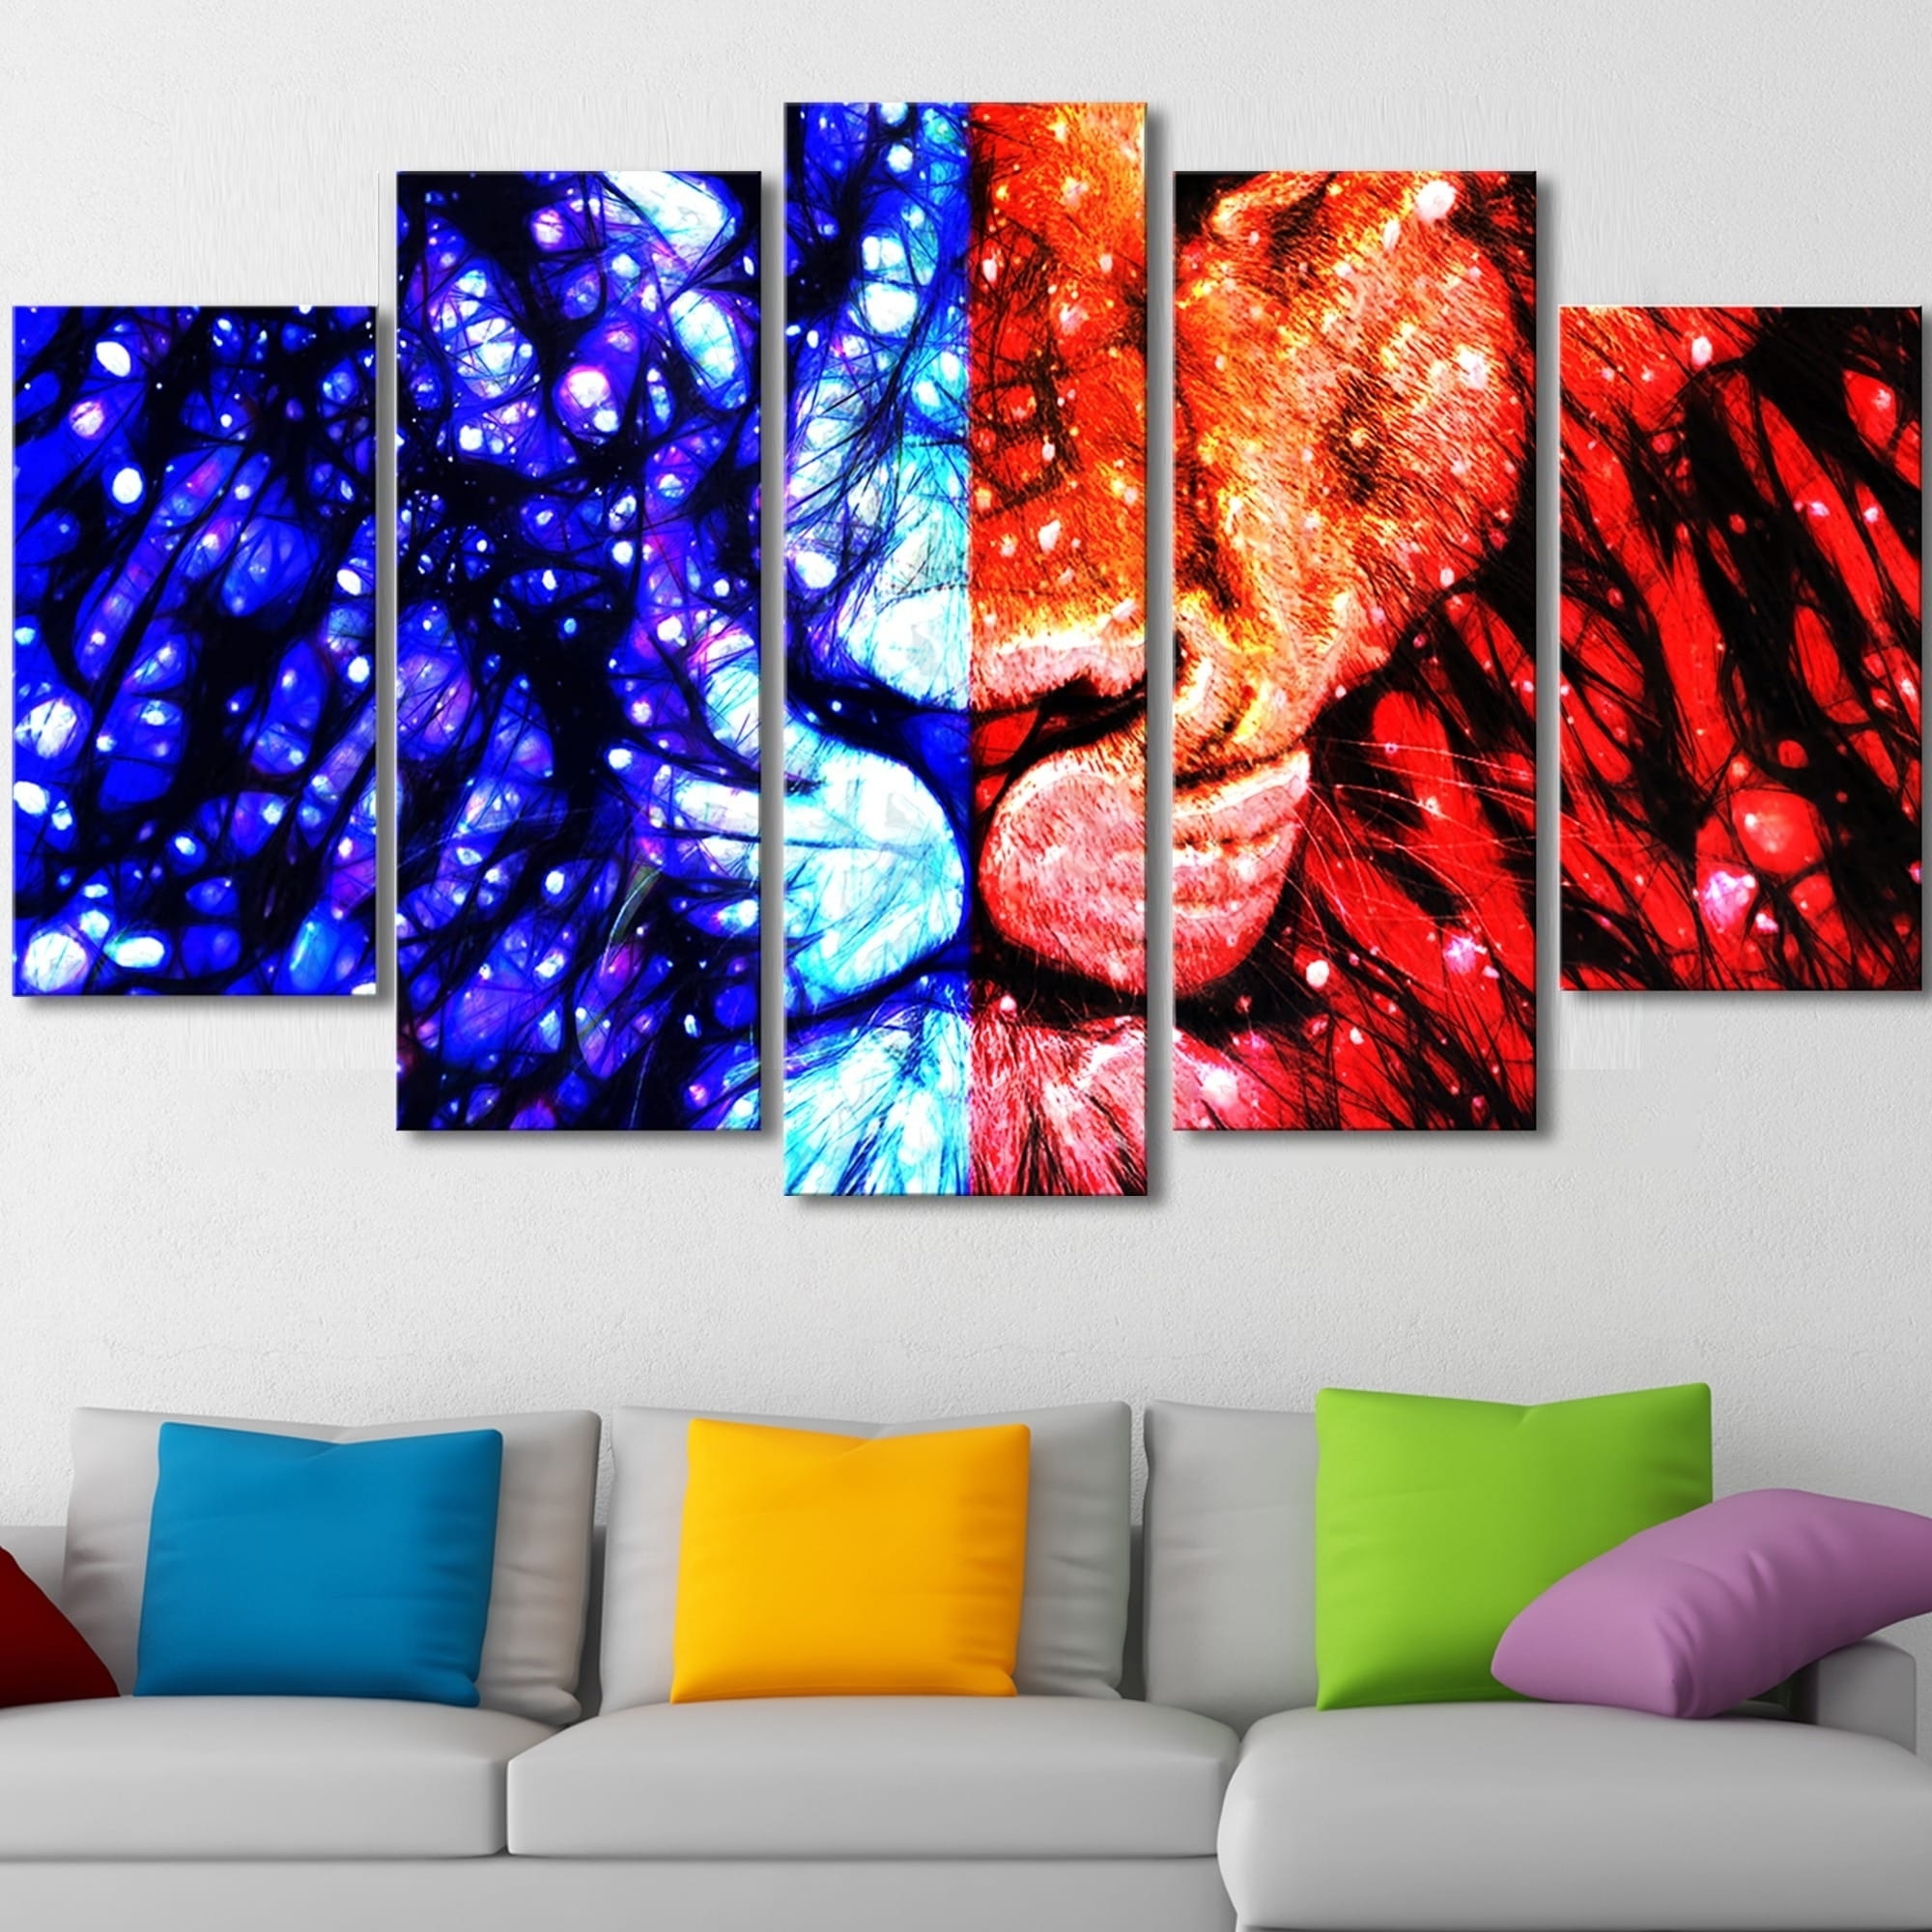 Preferred King Of The Jungle' Canvas Wall Art – Free Shipping Today With Jungle Canvas Wall Art (View 9 of 15)